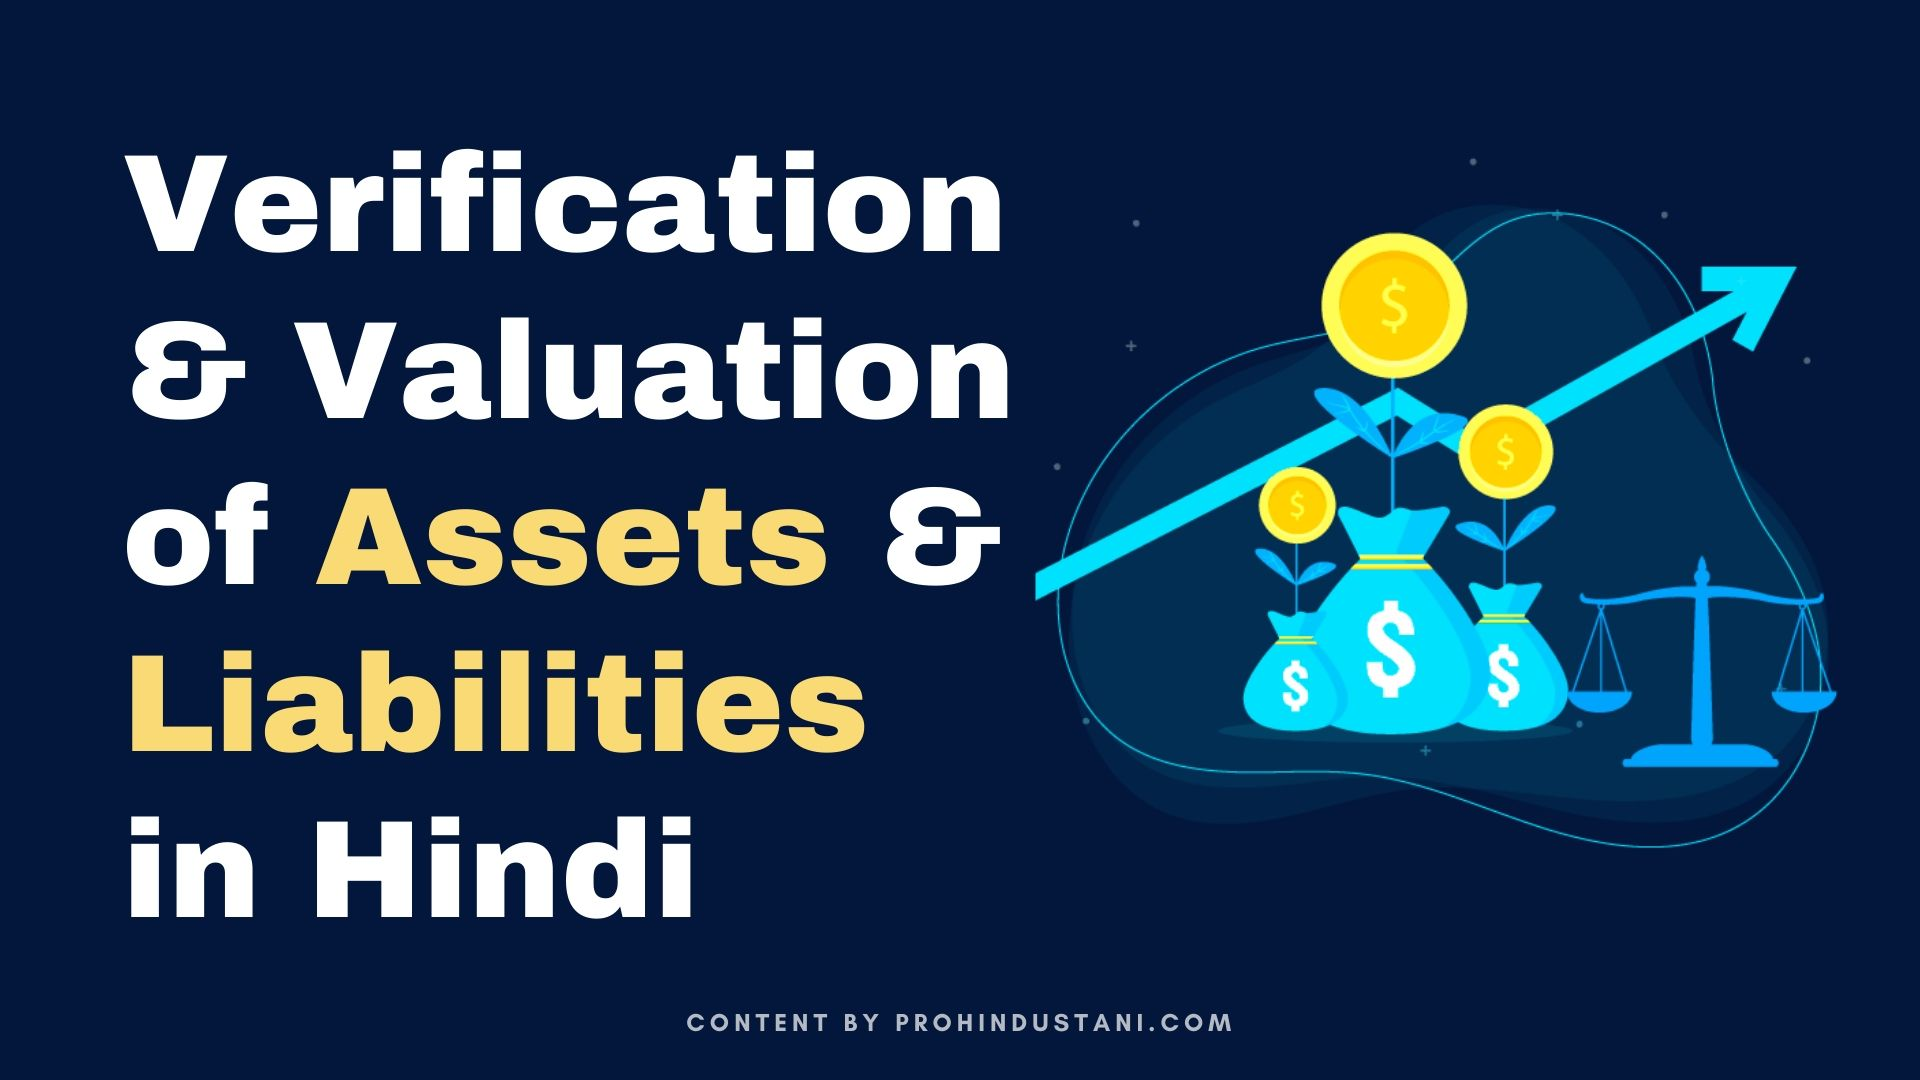 Verification & Valuation of Assets & Liabilities in Hindi